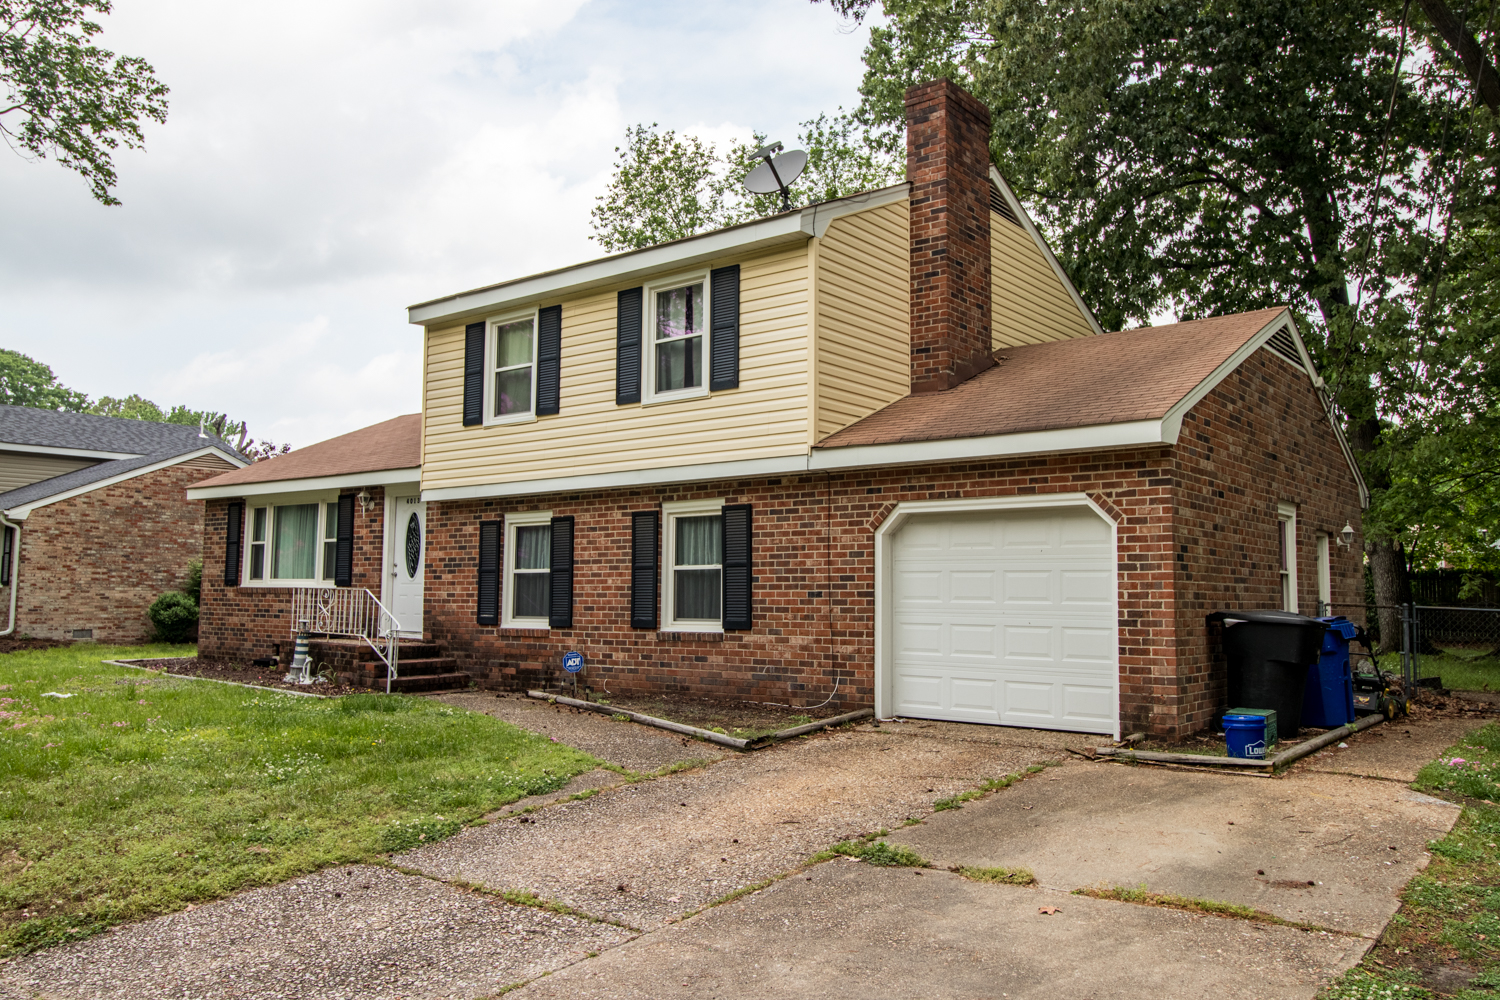 4013 Timberland Dr Portsmouth - MLS (2 of 19).jpg